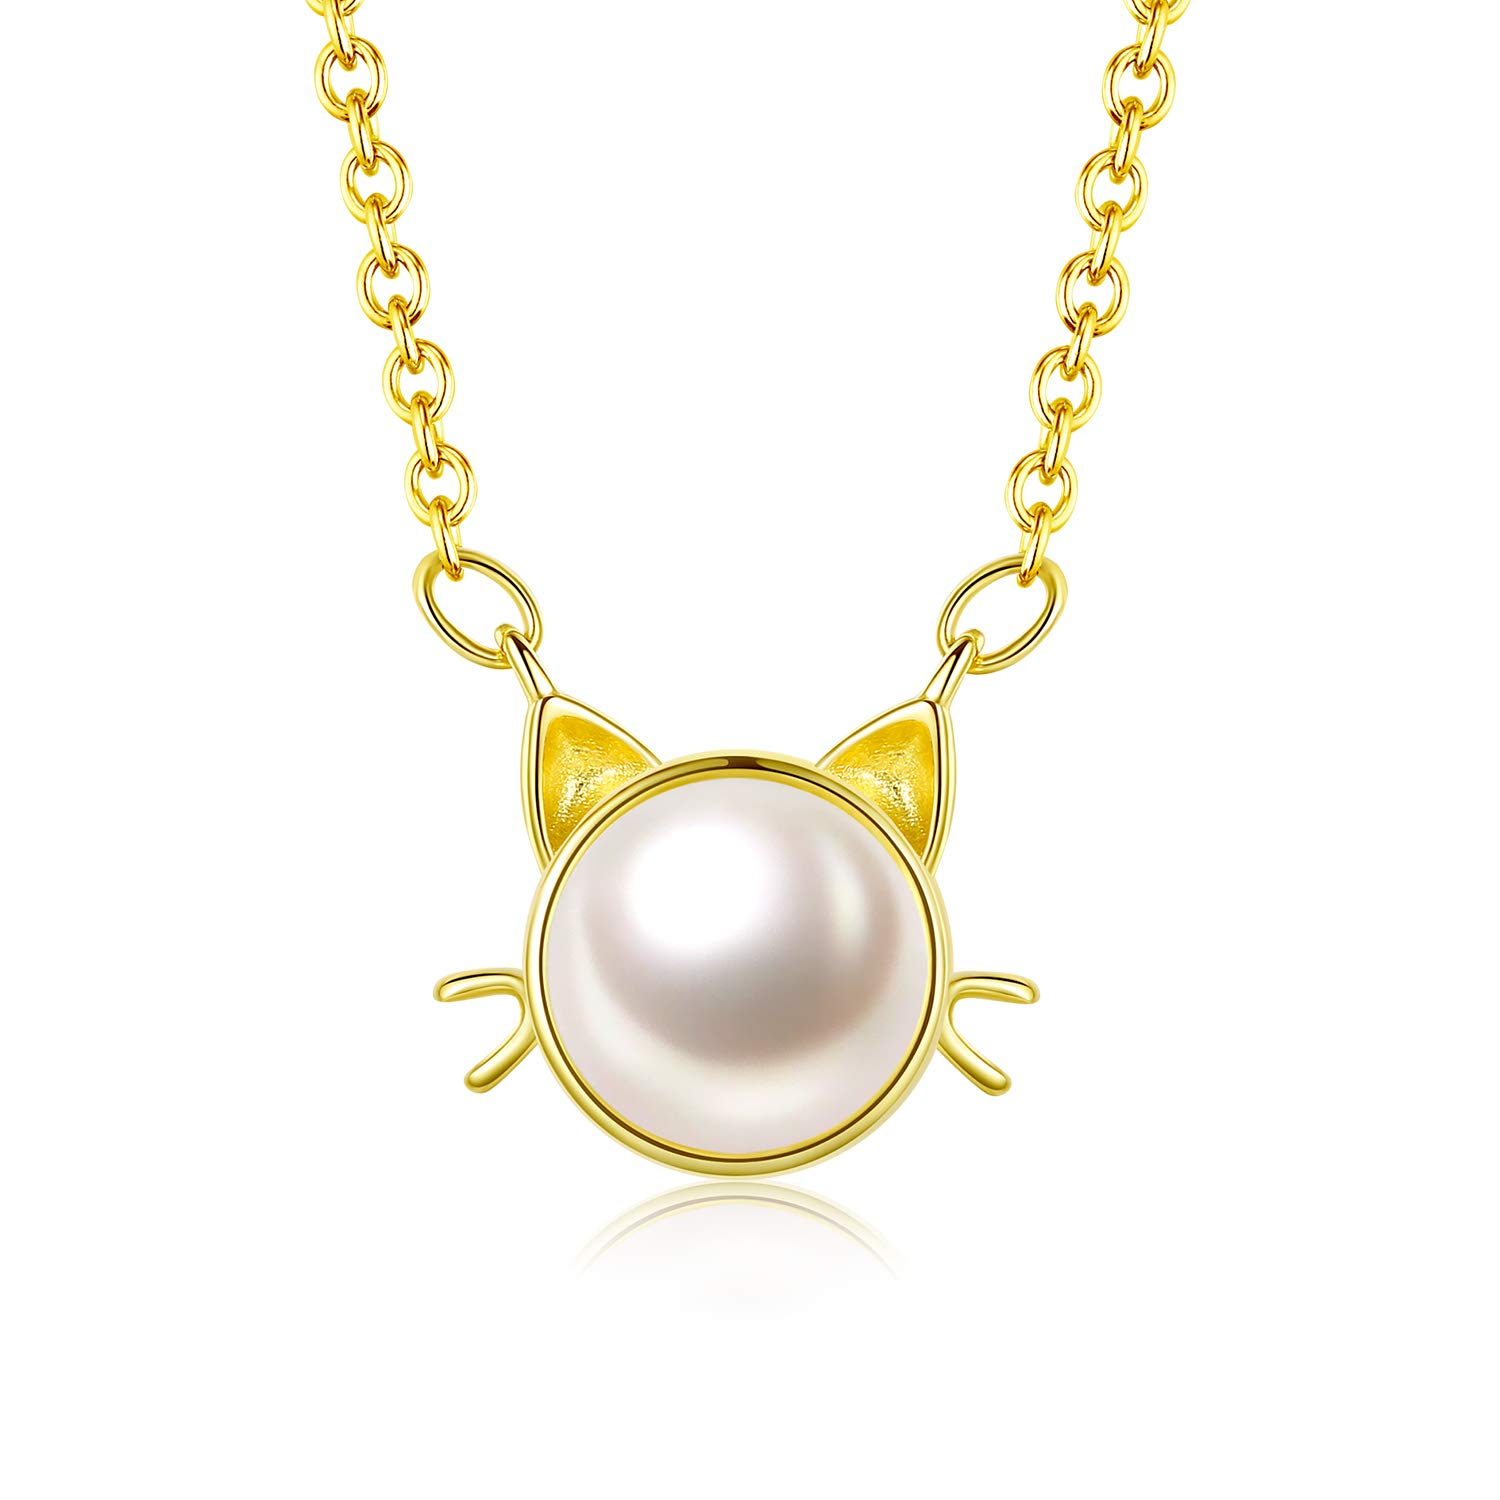 "Gold Plated Sterling Silver Freshwater Cultured Pearl Cat Pendant Necklace for Women Girls- 16"" with 2"" Extender Chain"